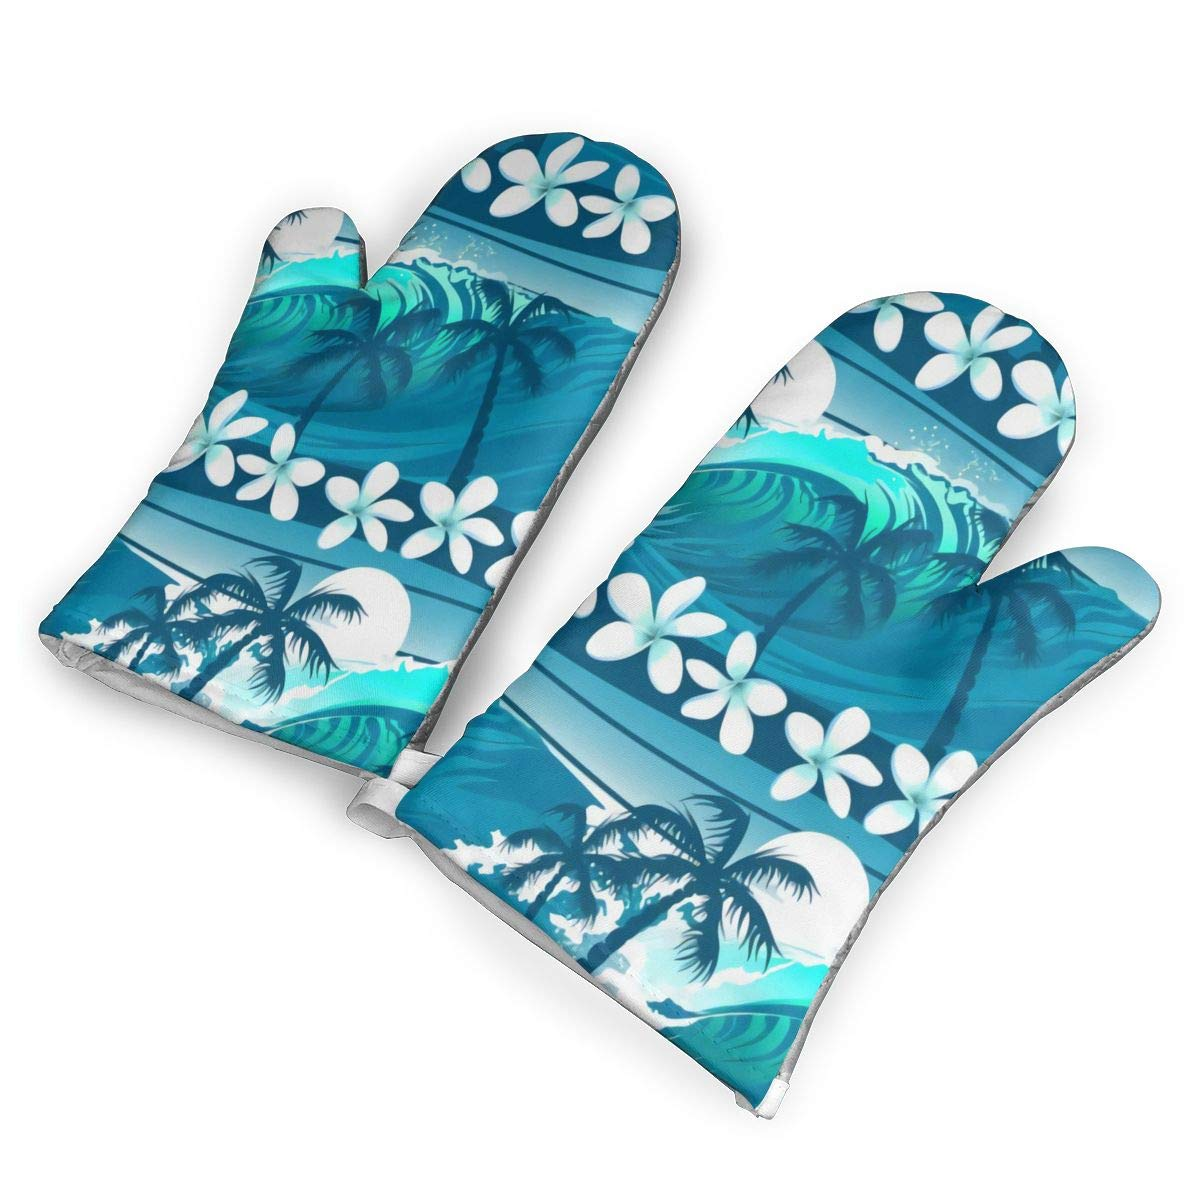 not Blue Tropical Surfing with Palm Trees Oven Mitts with Polyester Fabric Printed Pattern,1 Pair of Heat Resistant Oven Gloves for Cooking,Baking,Grilling,Barbecue Potholders